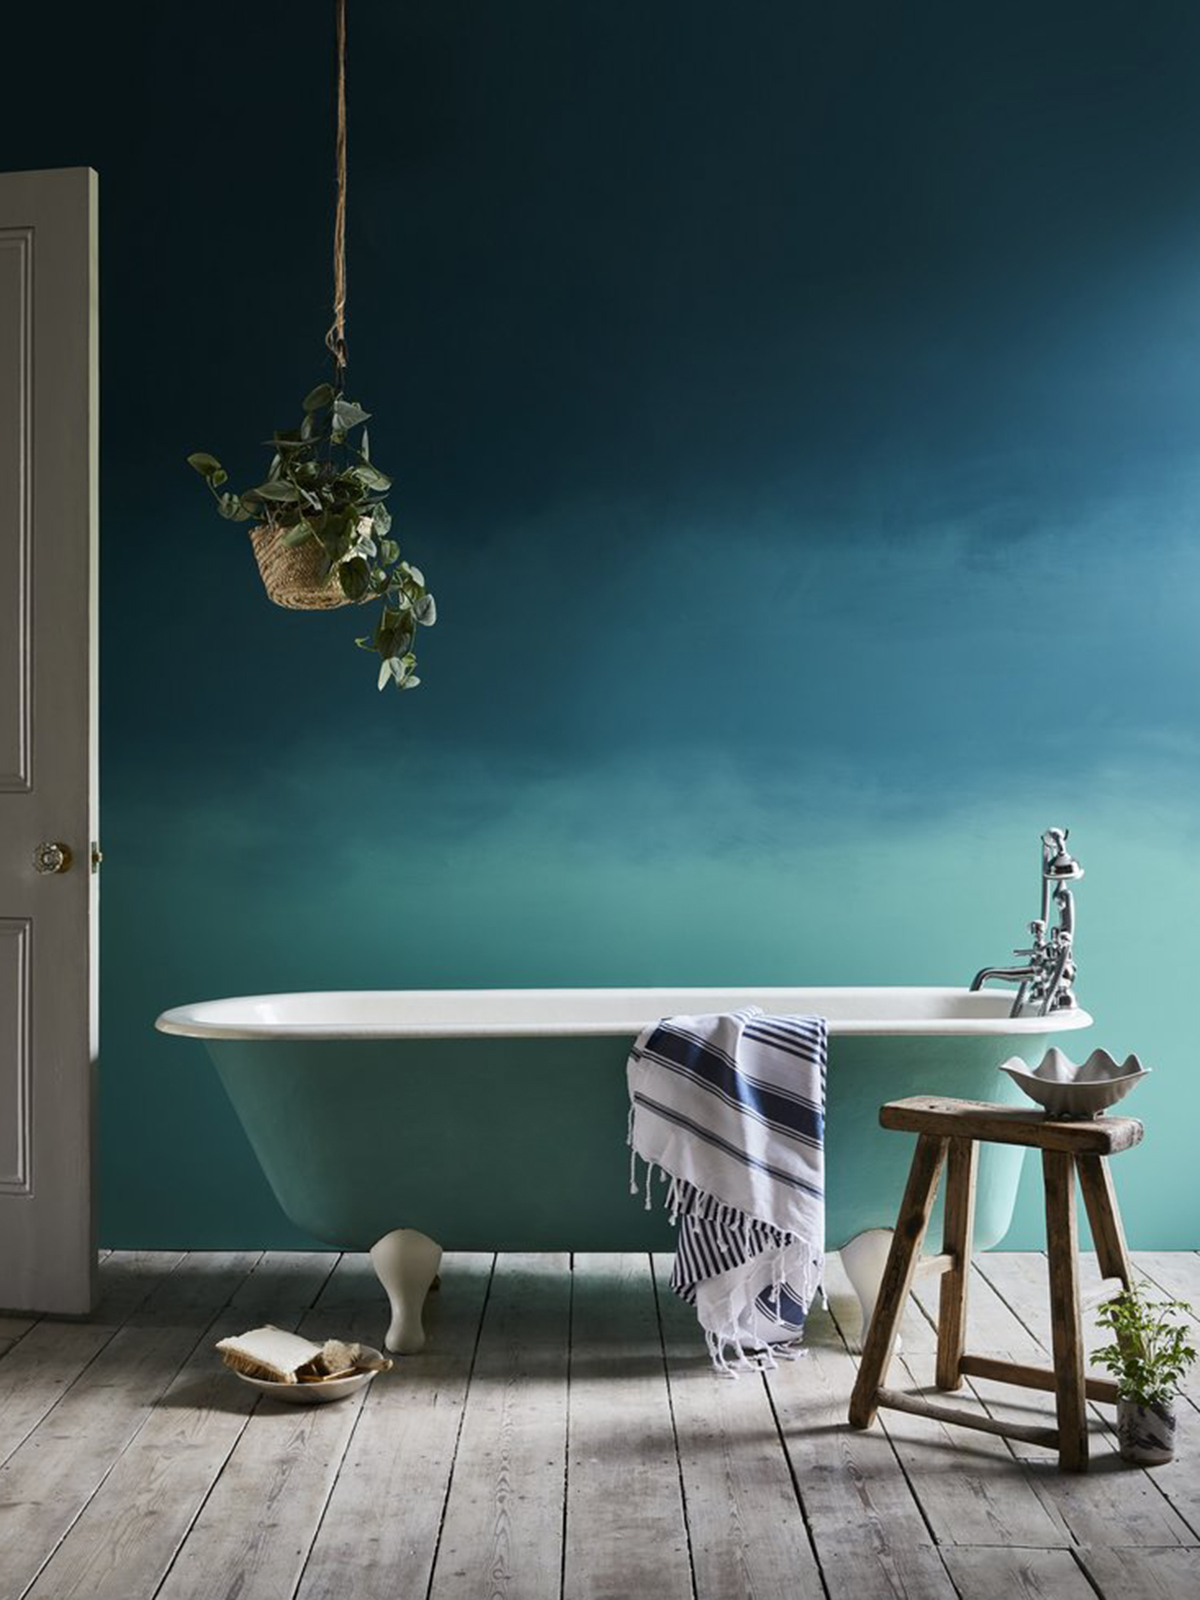 Ombre painted wall effect in Aubusson Blue Wall Paint and Provence Chalk Paint avaialble from Annie Sloan. Teal is the perfect interior design trend for your home decor as reported by interior designer Sophie Robinson by